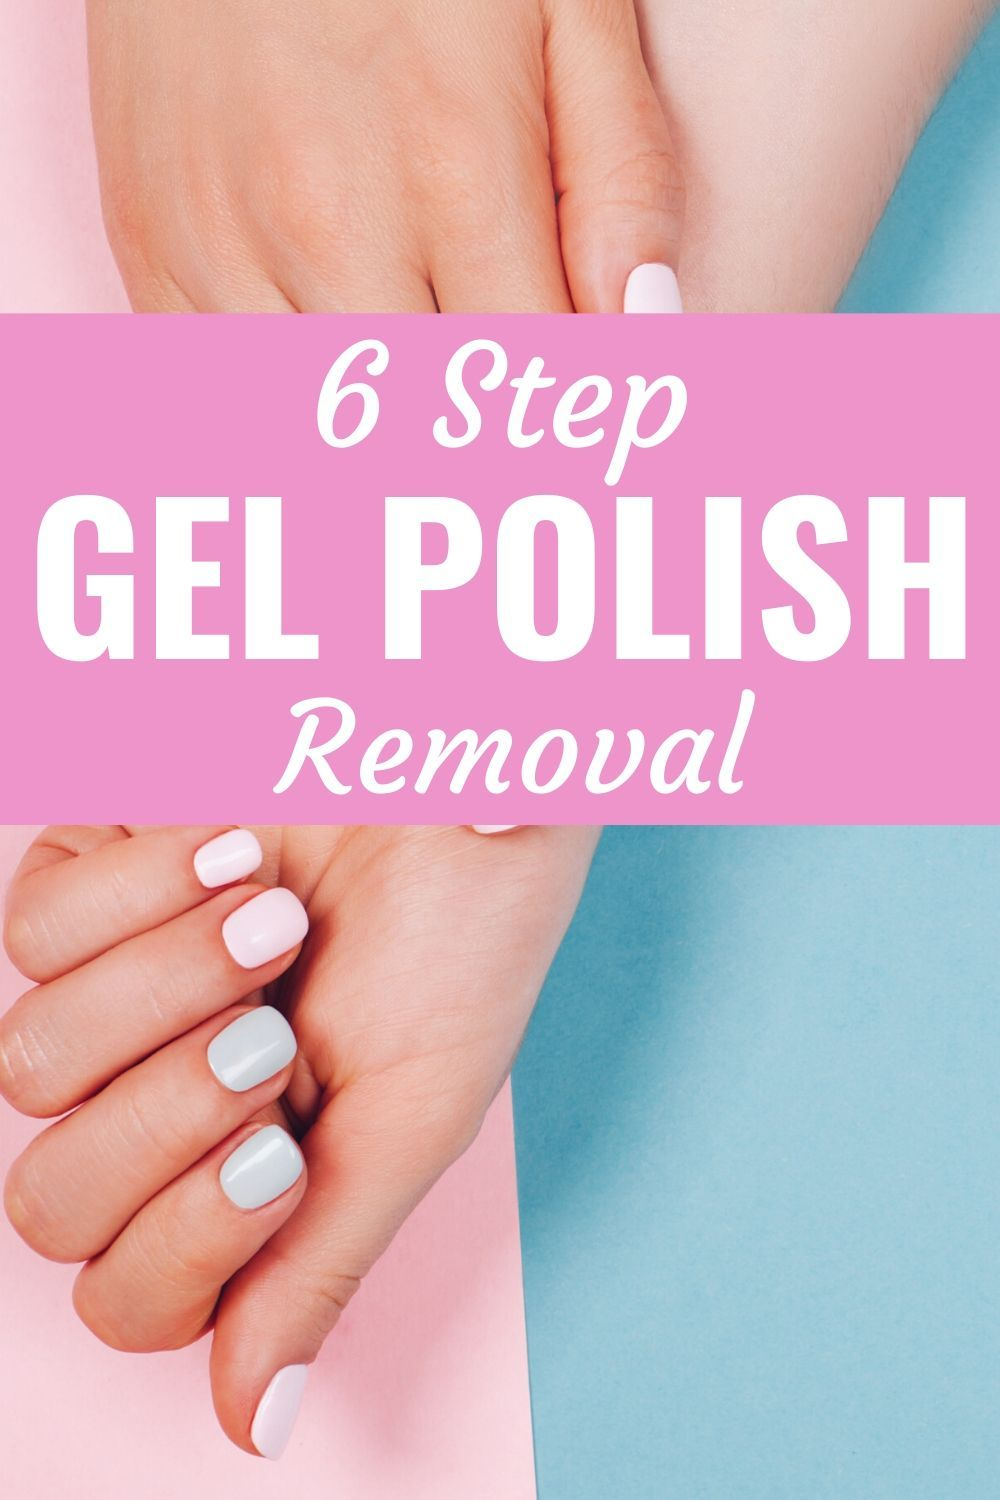 How To Remove Gel Nail Polish At Home Without Acetone In 2020 Shellac Nails At Home Remove Shellac Gel Nail Removal